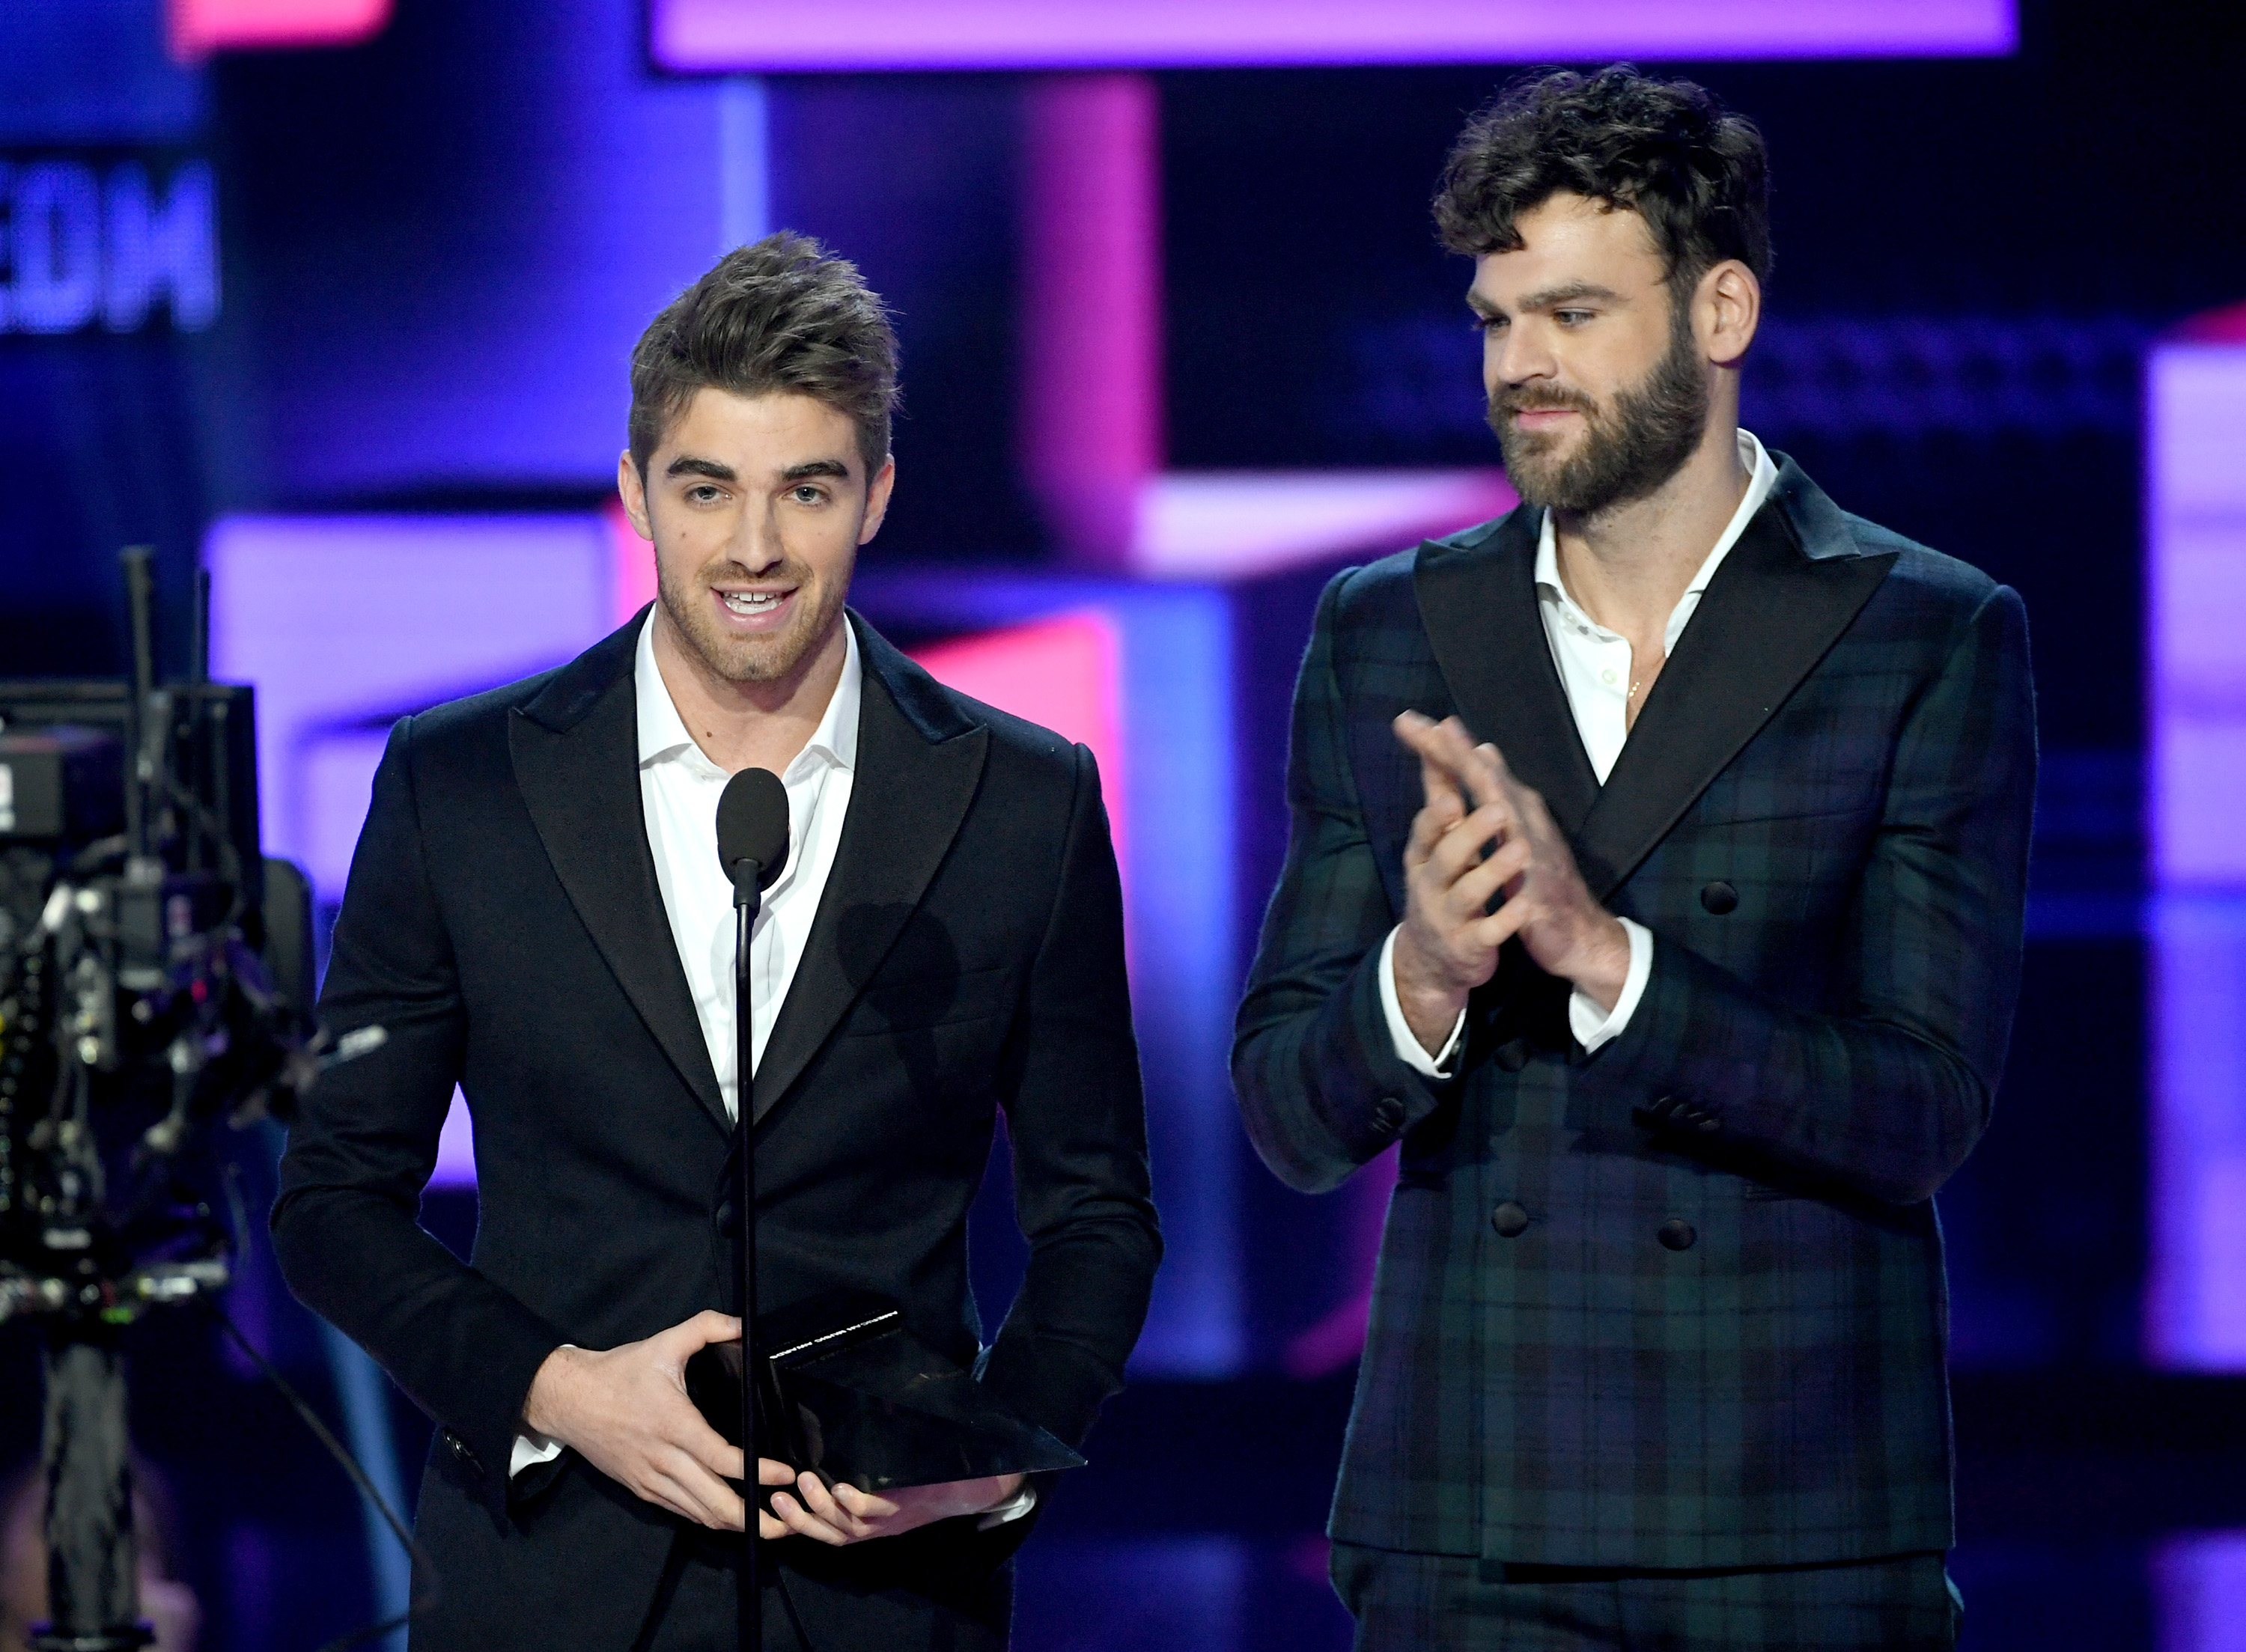 Andrew Taggart and Alex Pall of music group The Chainsmokers accept the Favorite Artist- Electronic Dance Music award onstage during the 2017 American Music Awards at Microsoft Theater